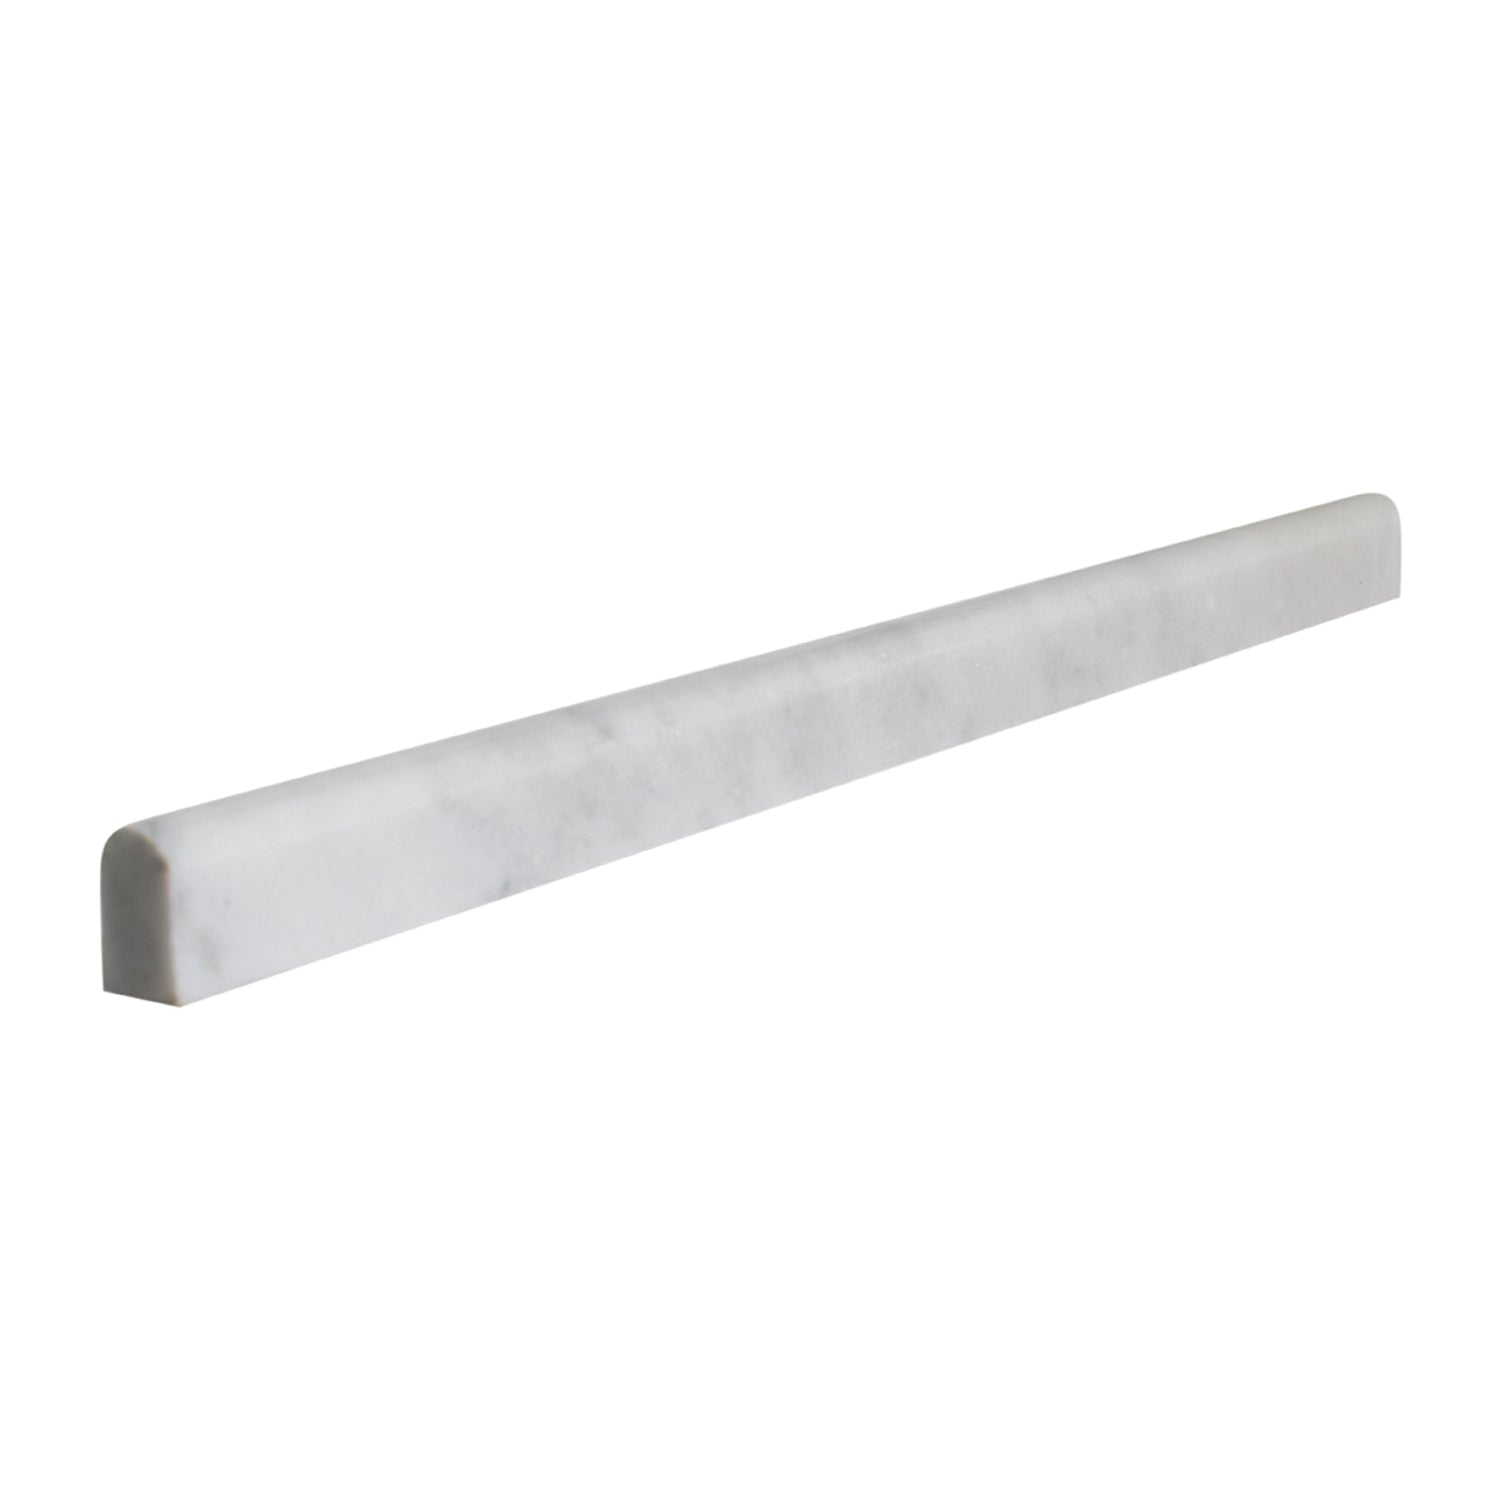 Bianco Carrara 1/2x12 Marble Pencil Moulding